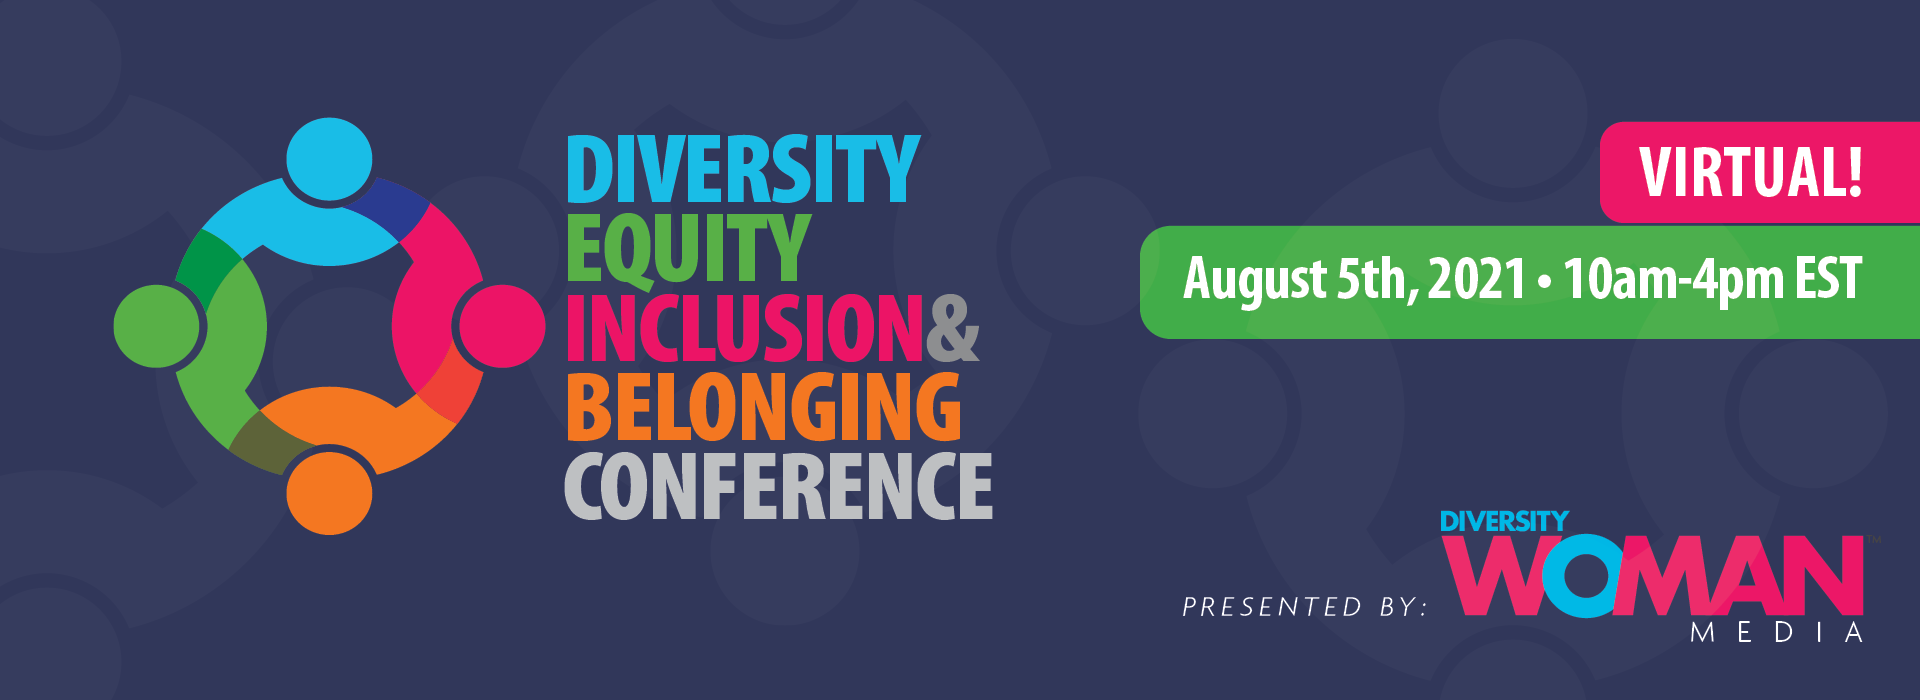 2021 Diversity Equity Inclusion and Belonging Conference